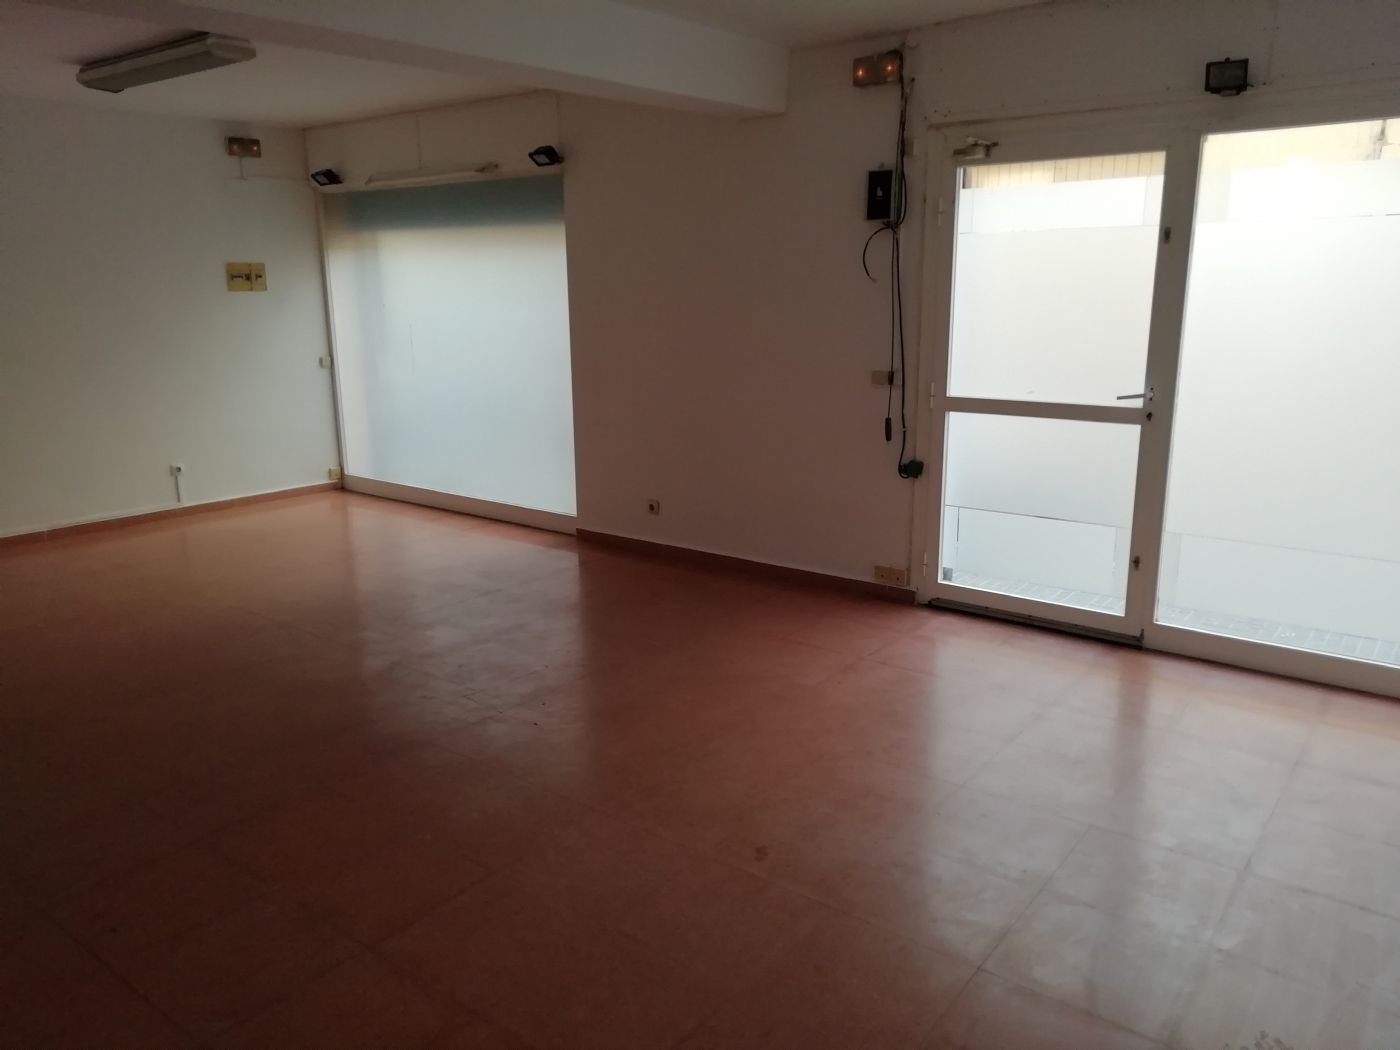 Lloguer Local Comercial en Carrer cuba (de), 7. Local de 50 m2 en calle cuba